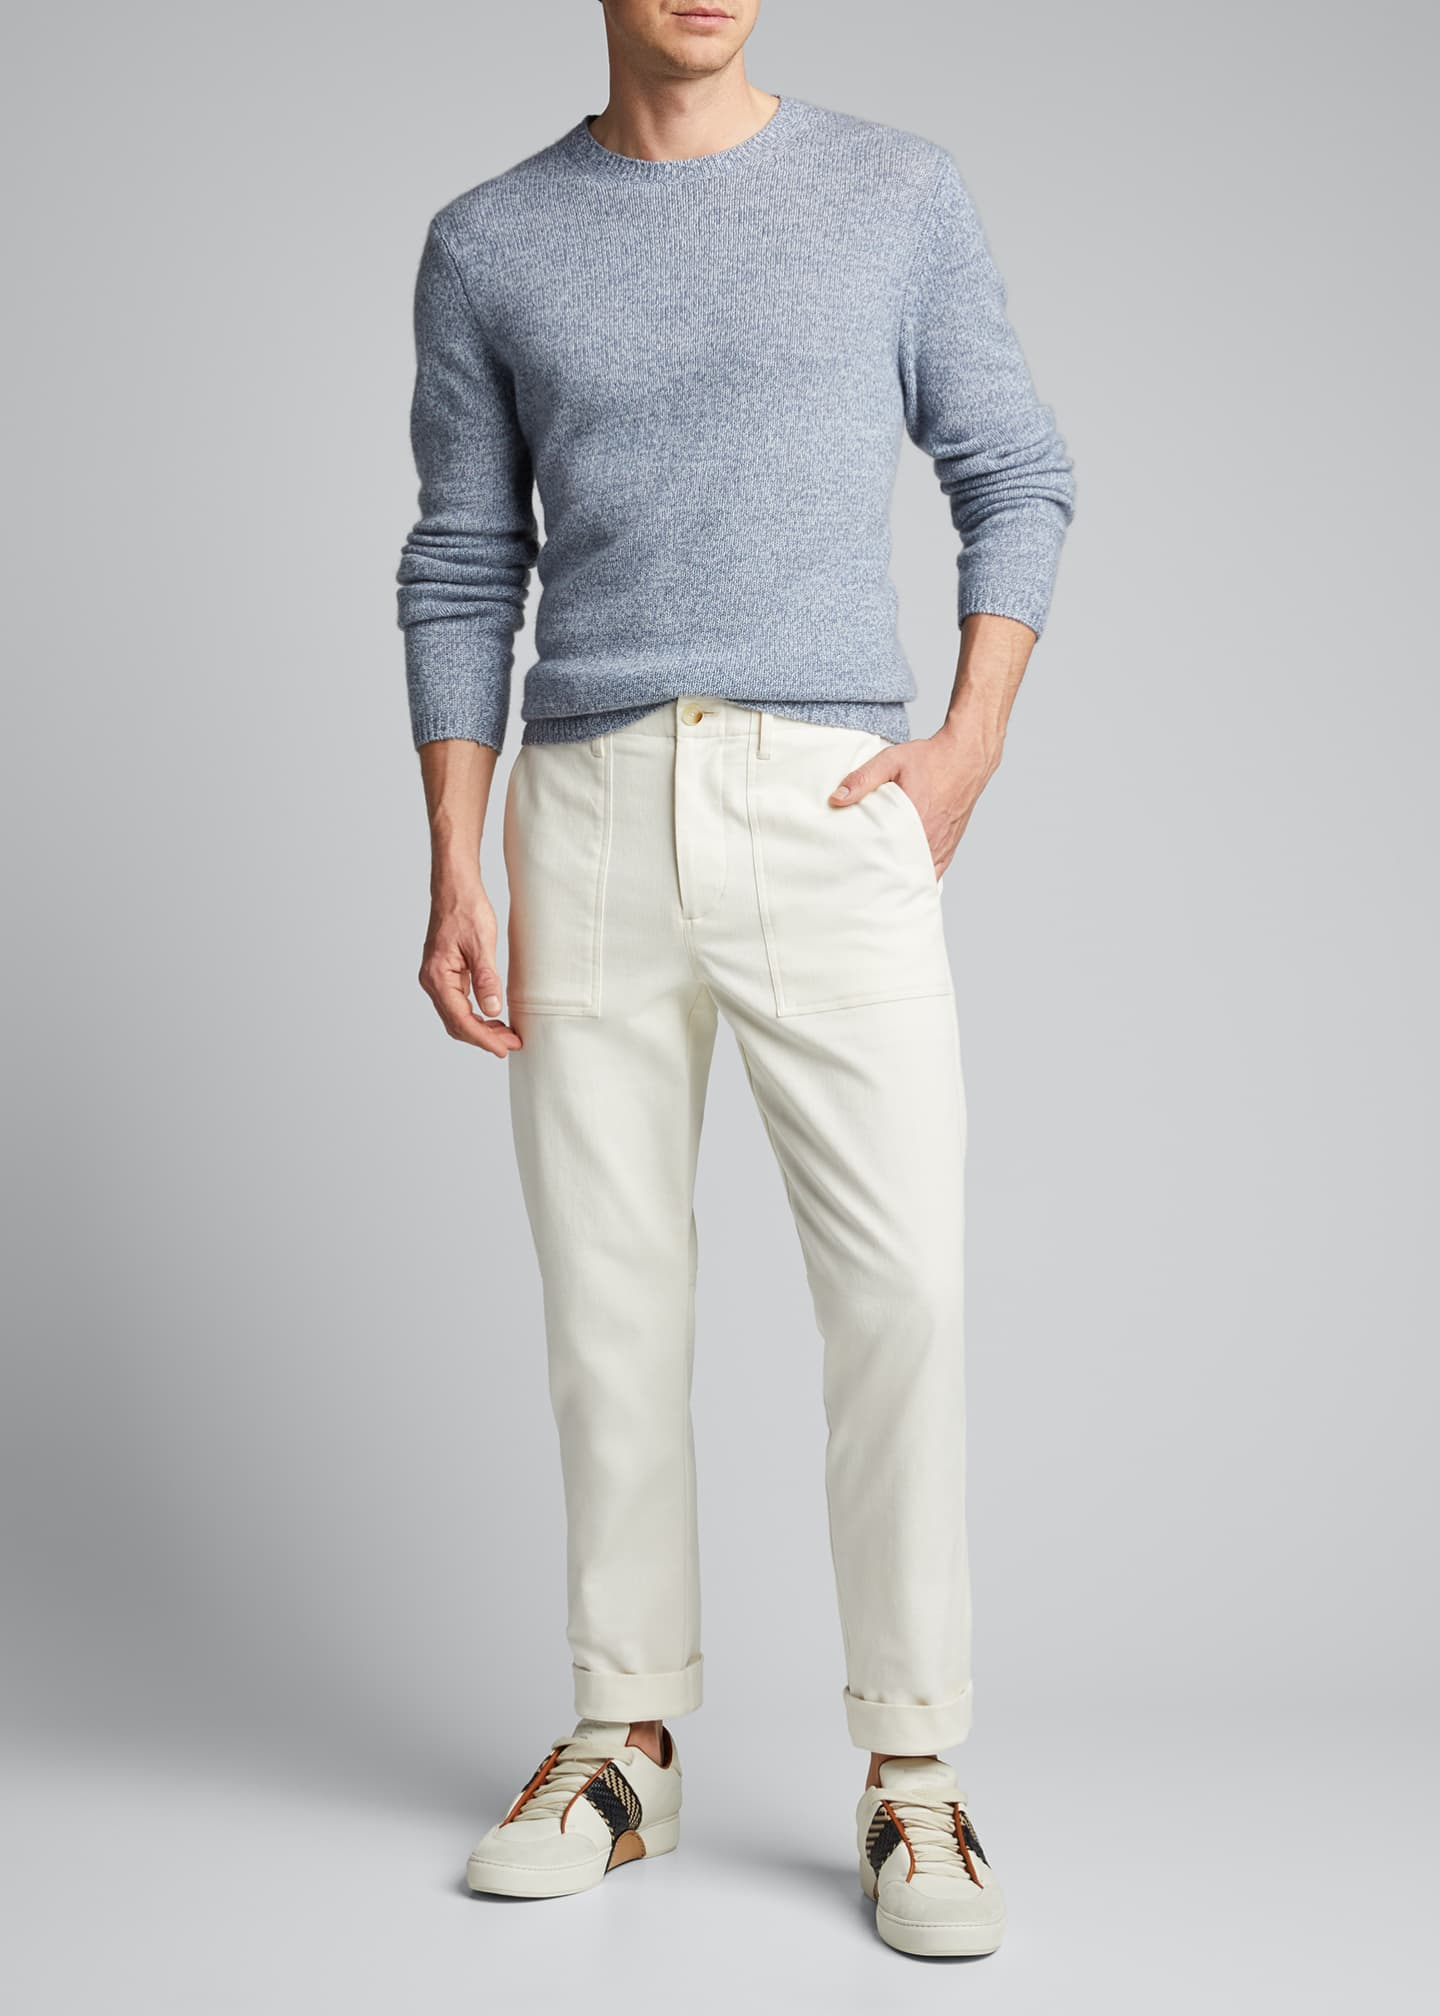 Image 1 of 5: Men's Solid Cashmere Crewneck Sweater